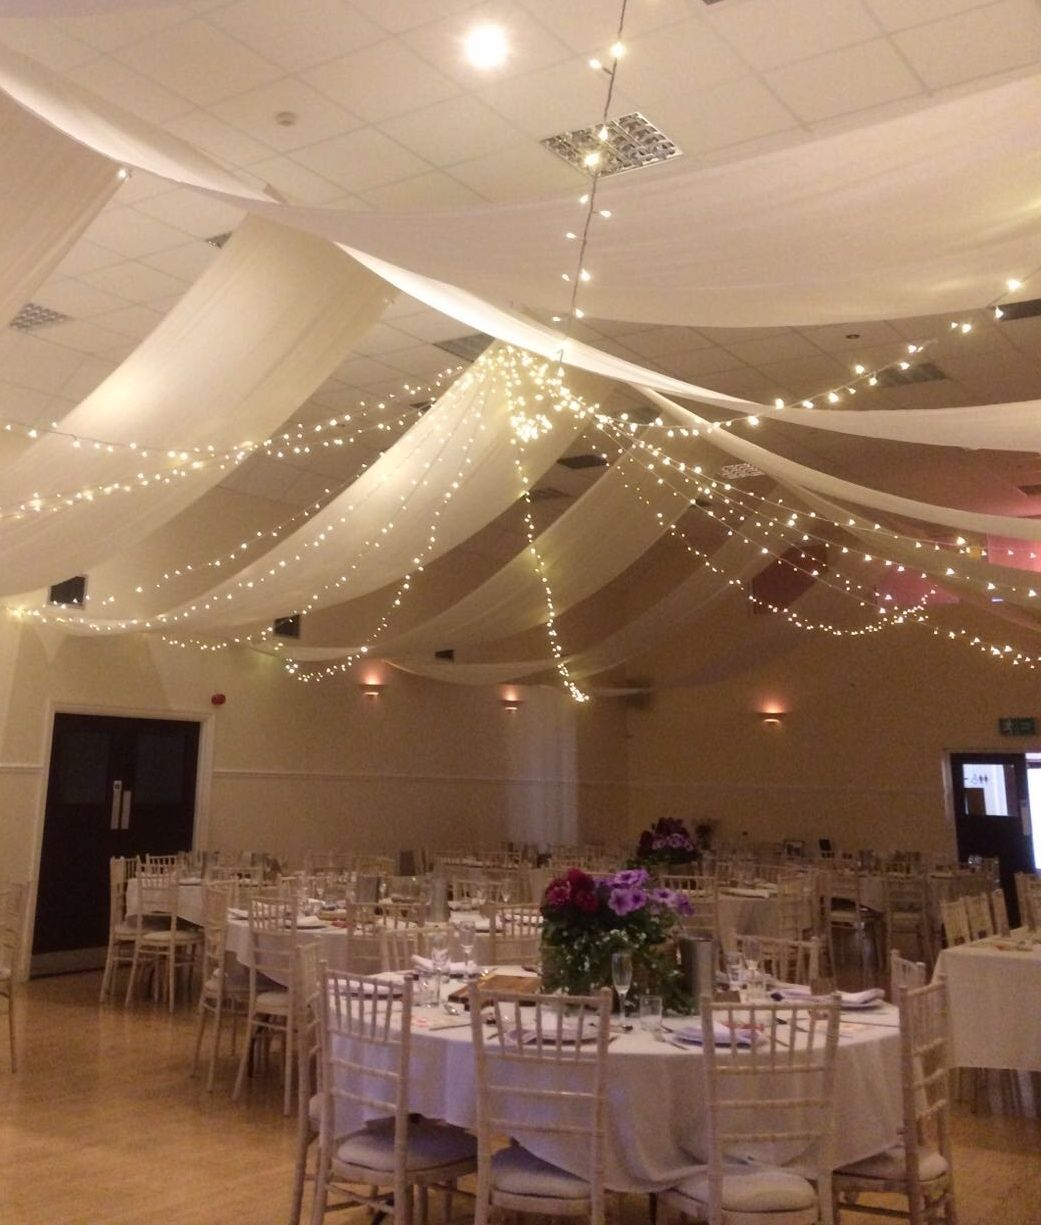 Canopies And Drapes Transform Your Venue With Colourful Additions